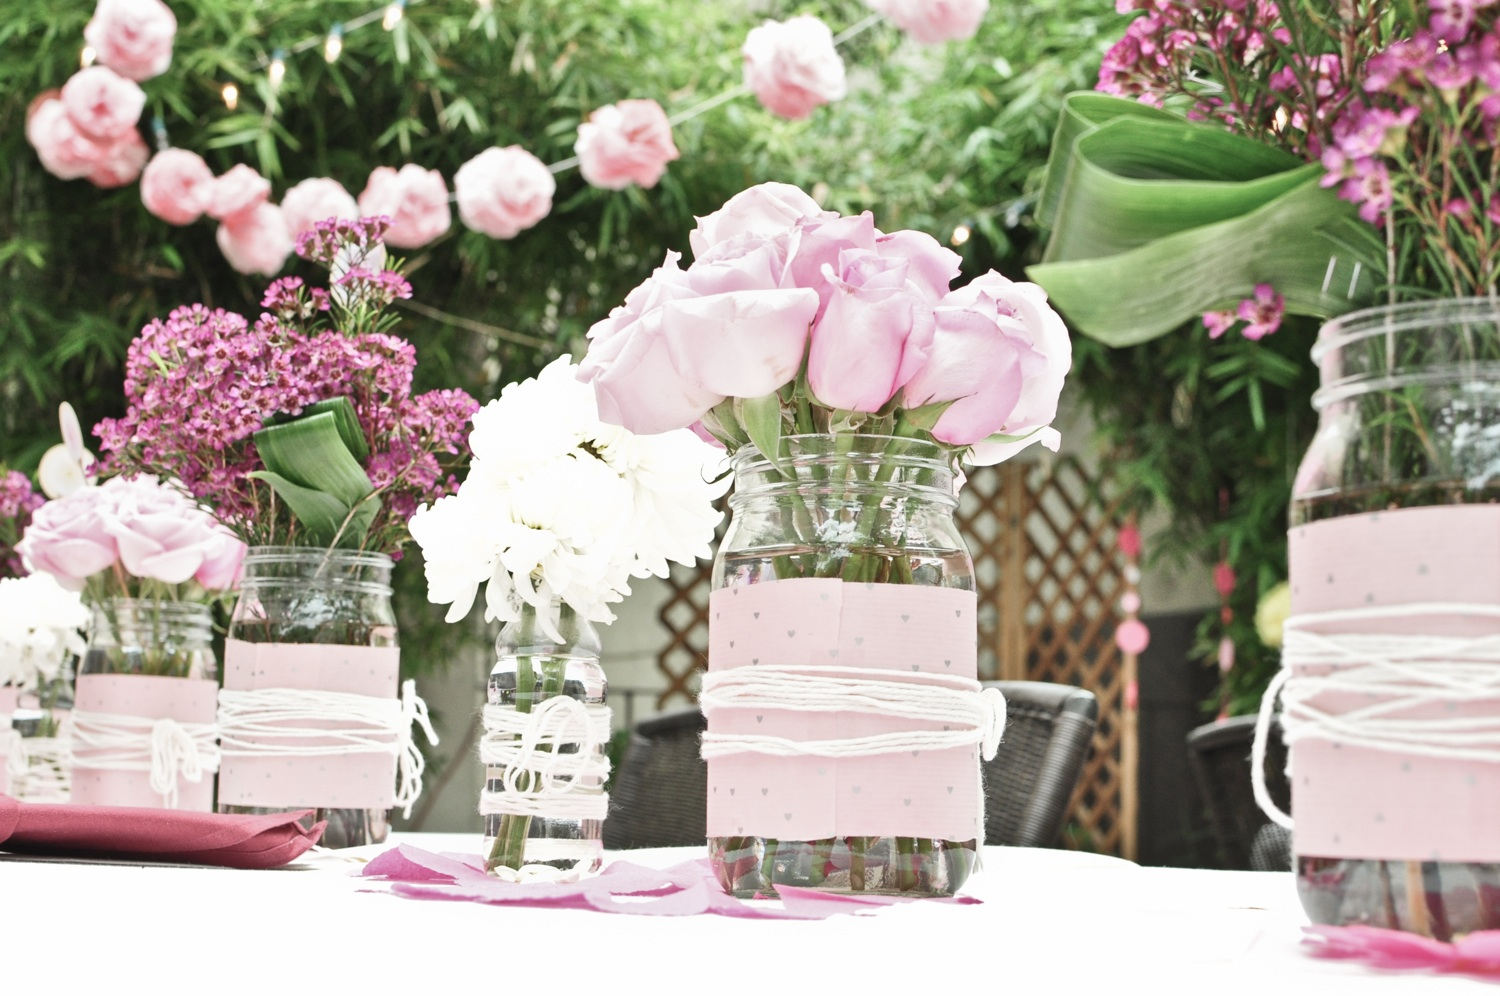 Romantic-wedding-centerpieces-mason-jars.original